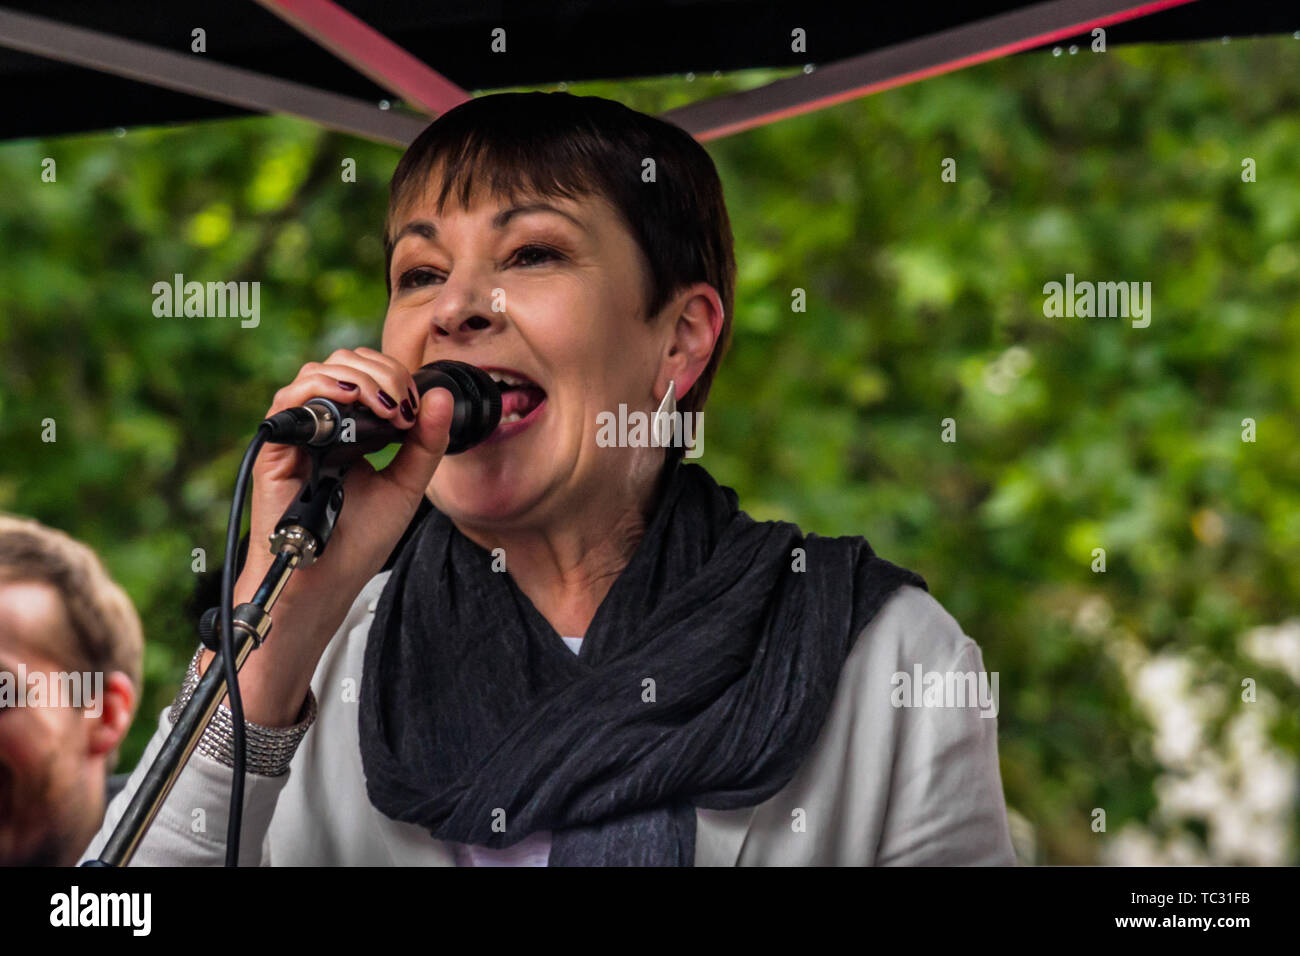 London, UK. 4th June 2019. Green Party MP Caroline Lucas speaking at the Whitehall rally to send a clear message that President Trump is not welcome here because of his climate denial, racism, Islamophobia, misogyny and bigotry. His policies of hate and division have energised the far right around the world. 4th June, 2019. Peter Marshall IMAGESLIVE Credit: Peter Marshall/IMAGESLIVE/ZUMA Wire/Alamy Live News Stock Photo